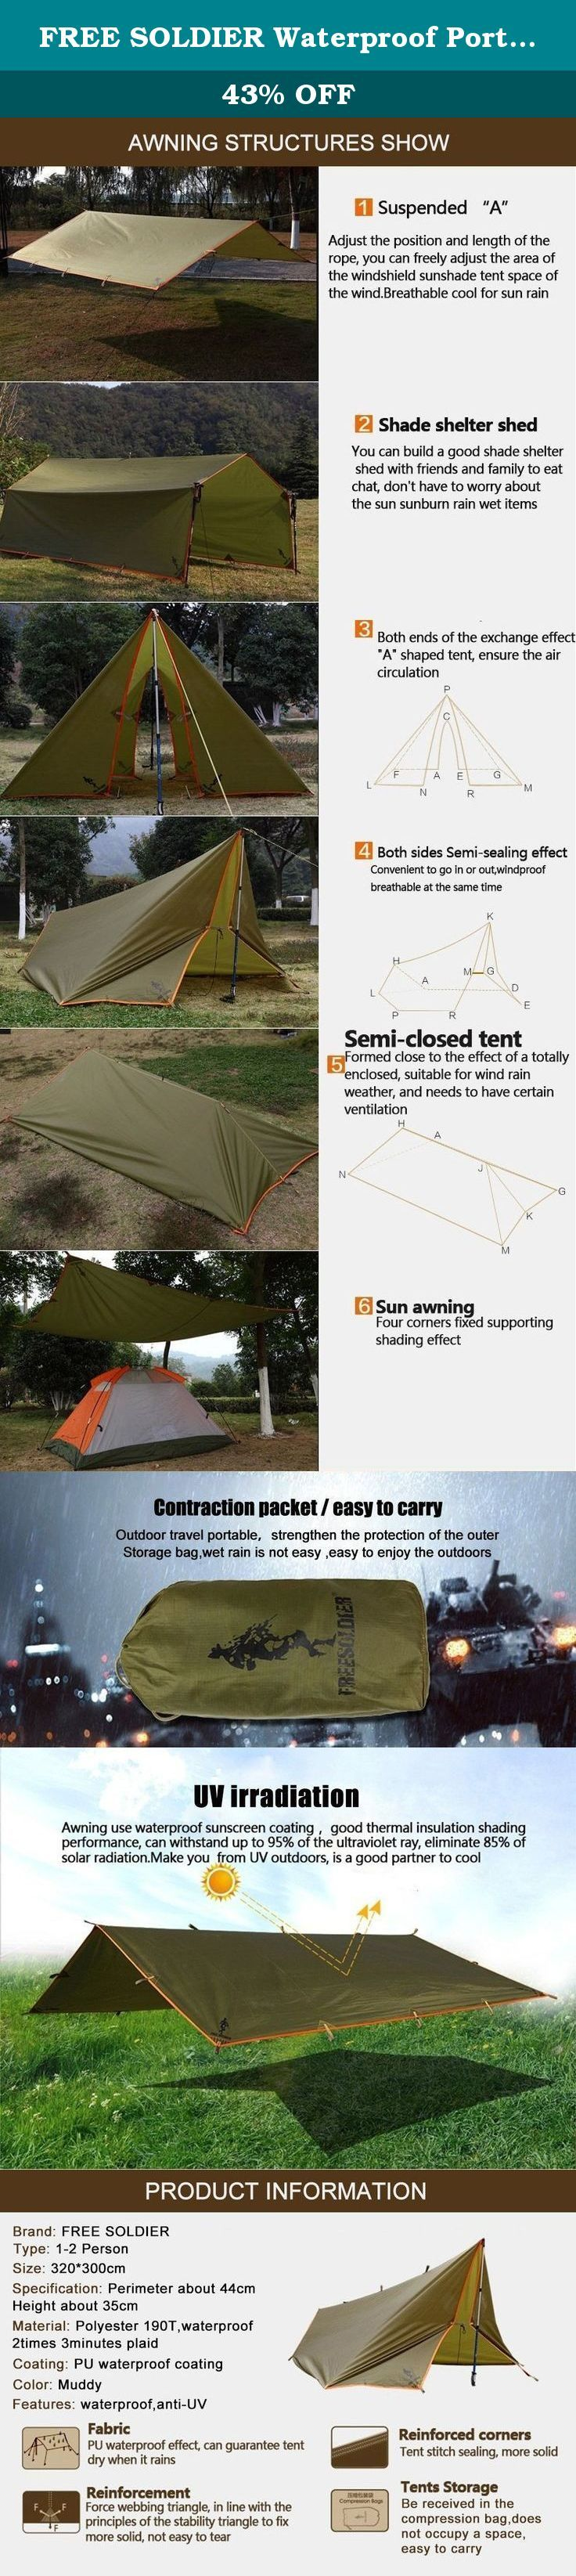 FREE SOLDIER Waterproof Portable Tarp Multifunctional Outdoor Camping Traveling Awning (Brown). FREE SOLDIER camping awning with 100% Quality Guaranteed! This tent inquires the owner to have some manipulative ability and imagination, building a tent needs time and hard work, if you enjoy turning things from side to side, this tent will be very suitable for you. Introduction: Material: Polyester 190T checked fabric with waterproof PU coating Color: Mud color Type: 1-2 person Feature:...